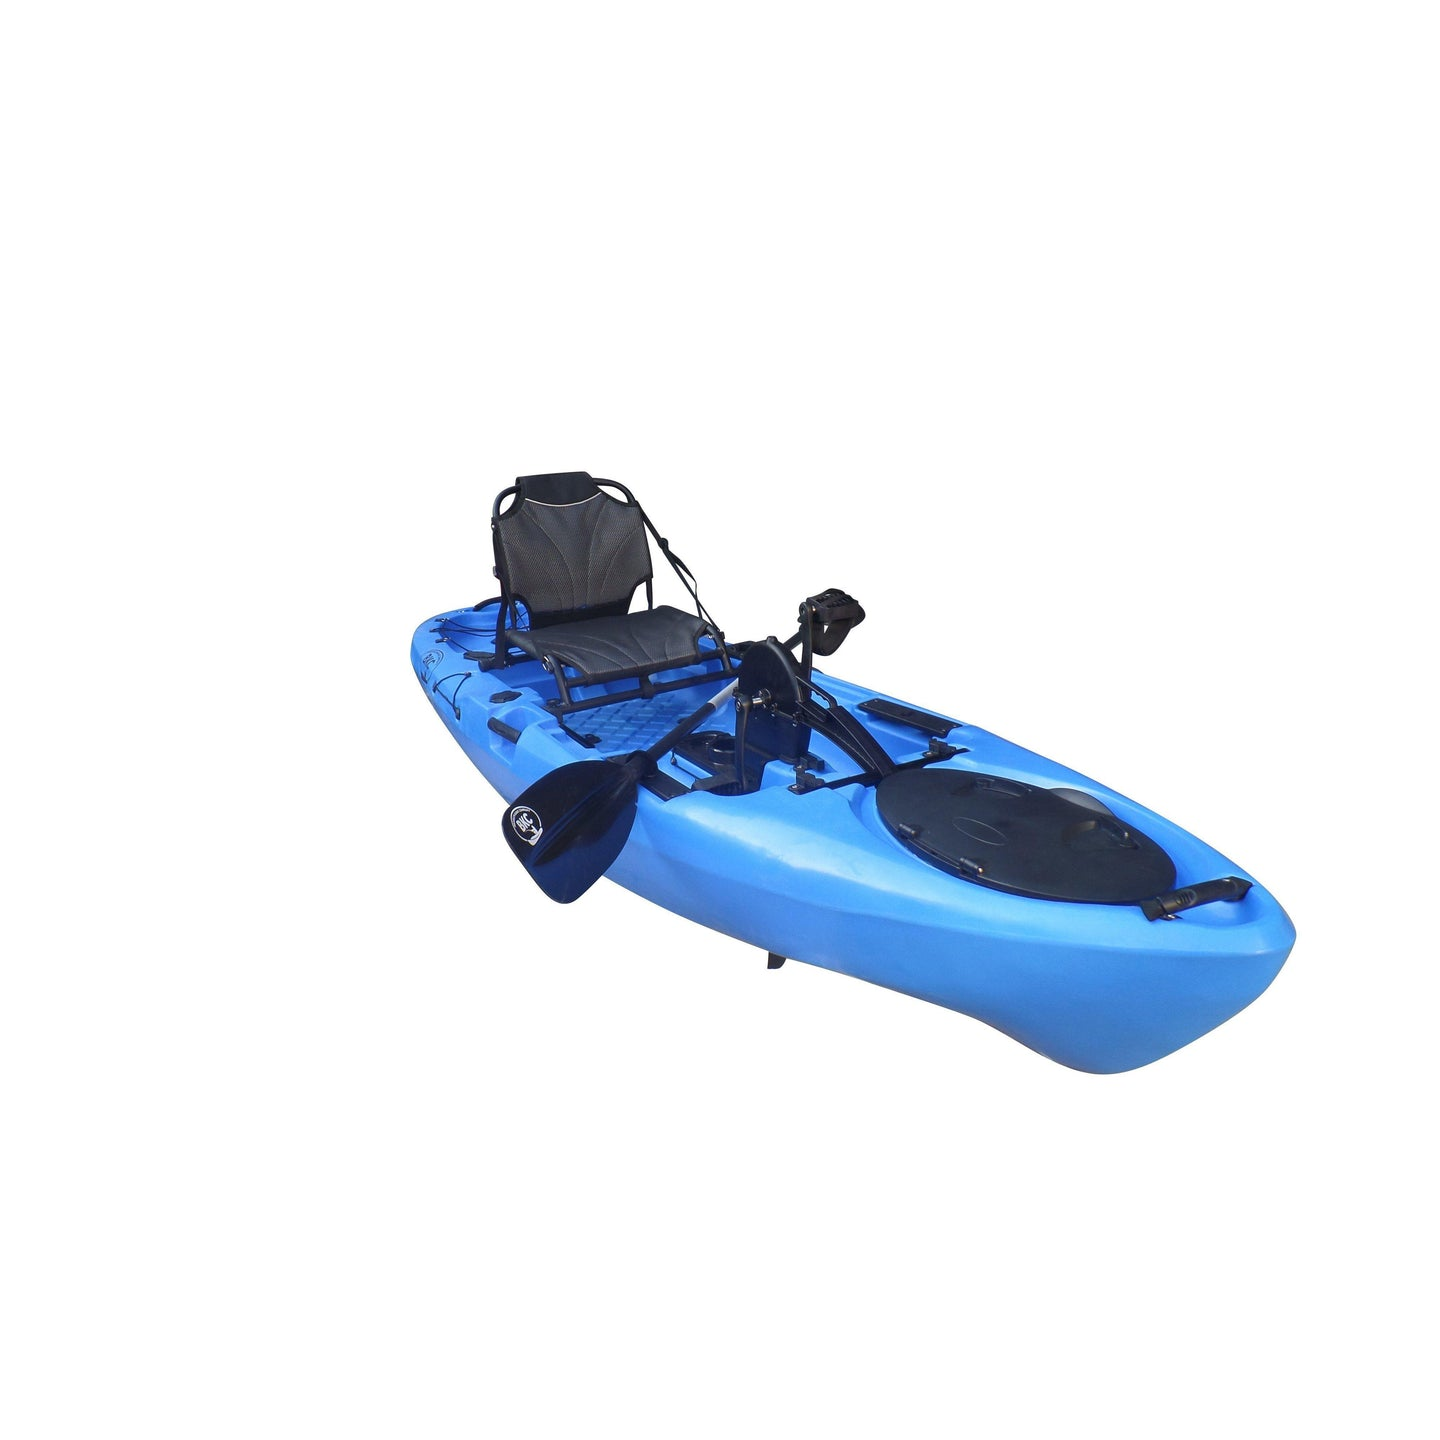 BKC UH-PK13 Pedal Drive Solo Traveler 13 Foot, With Pedal Drive, Rudder System, Paddle And Seat - kayakshops